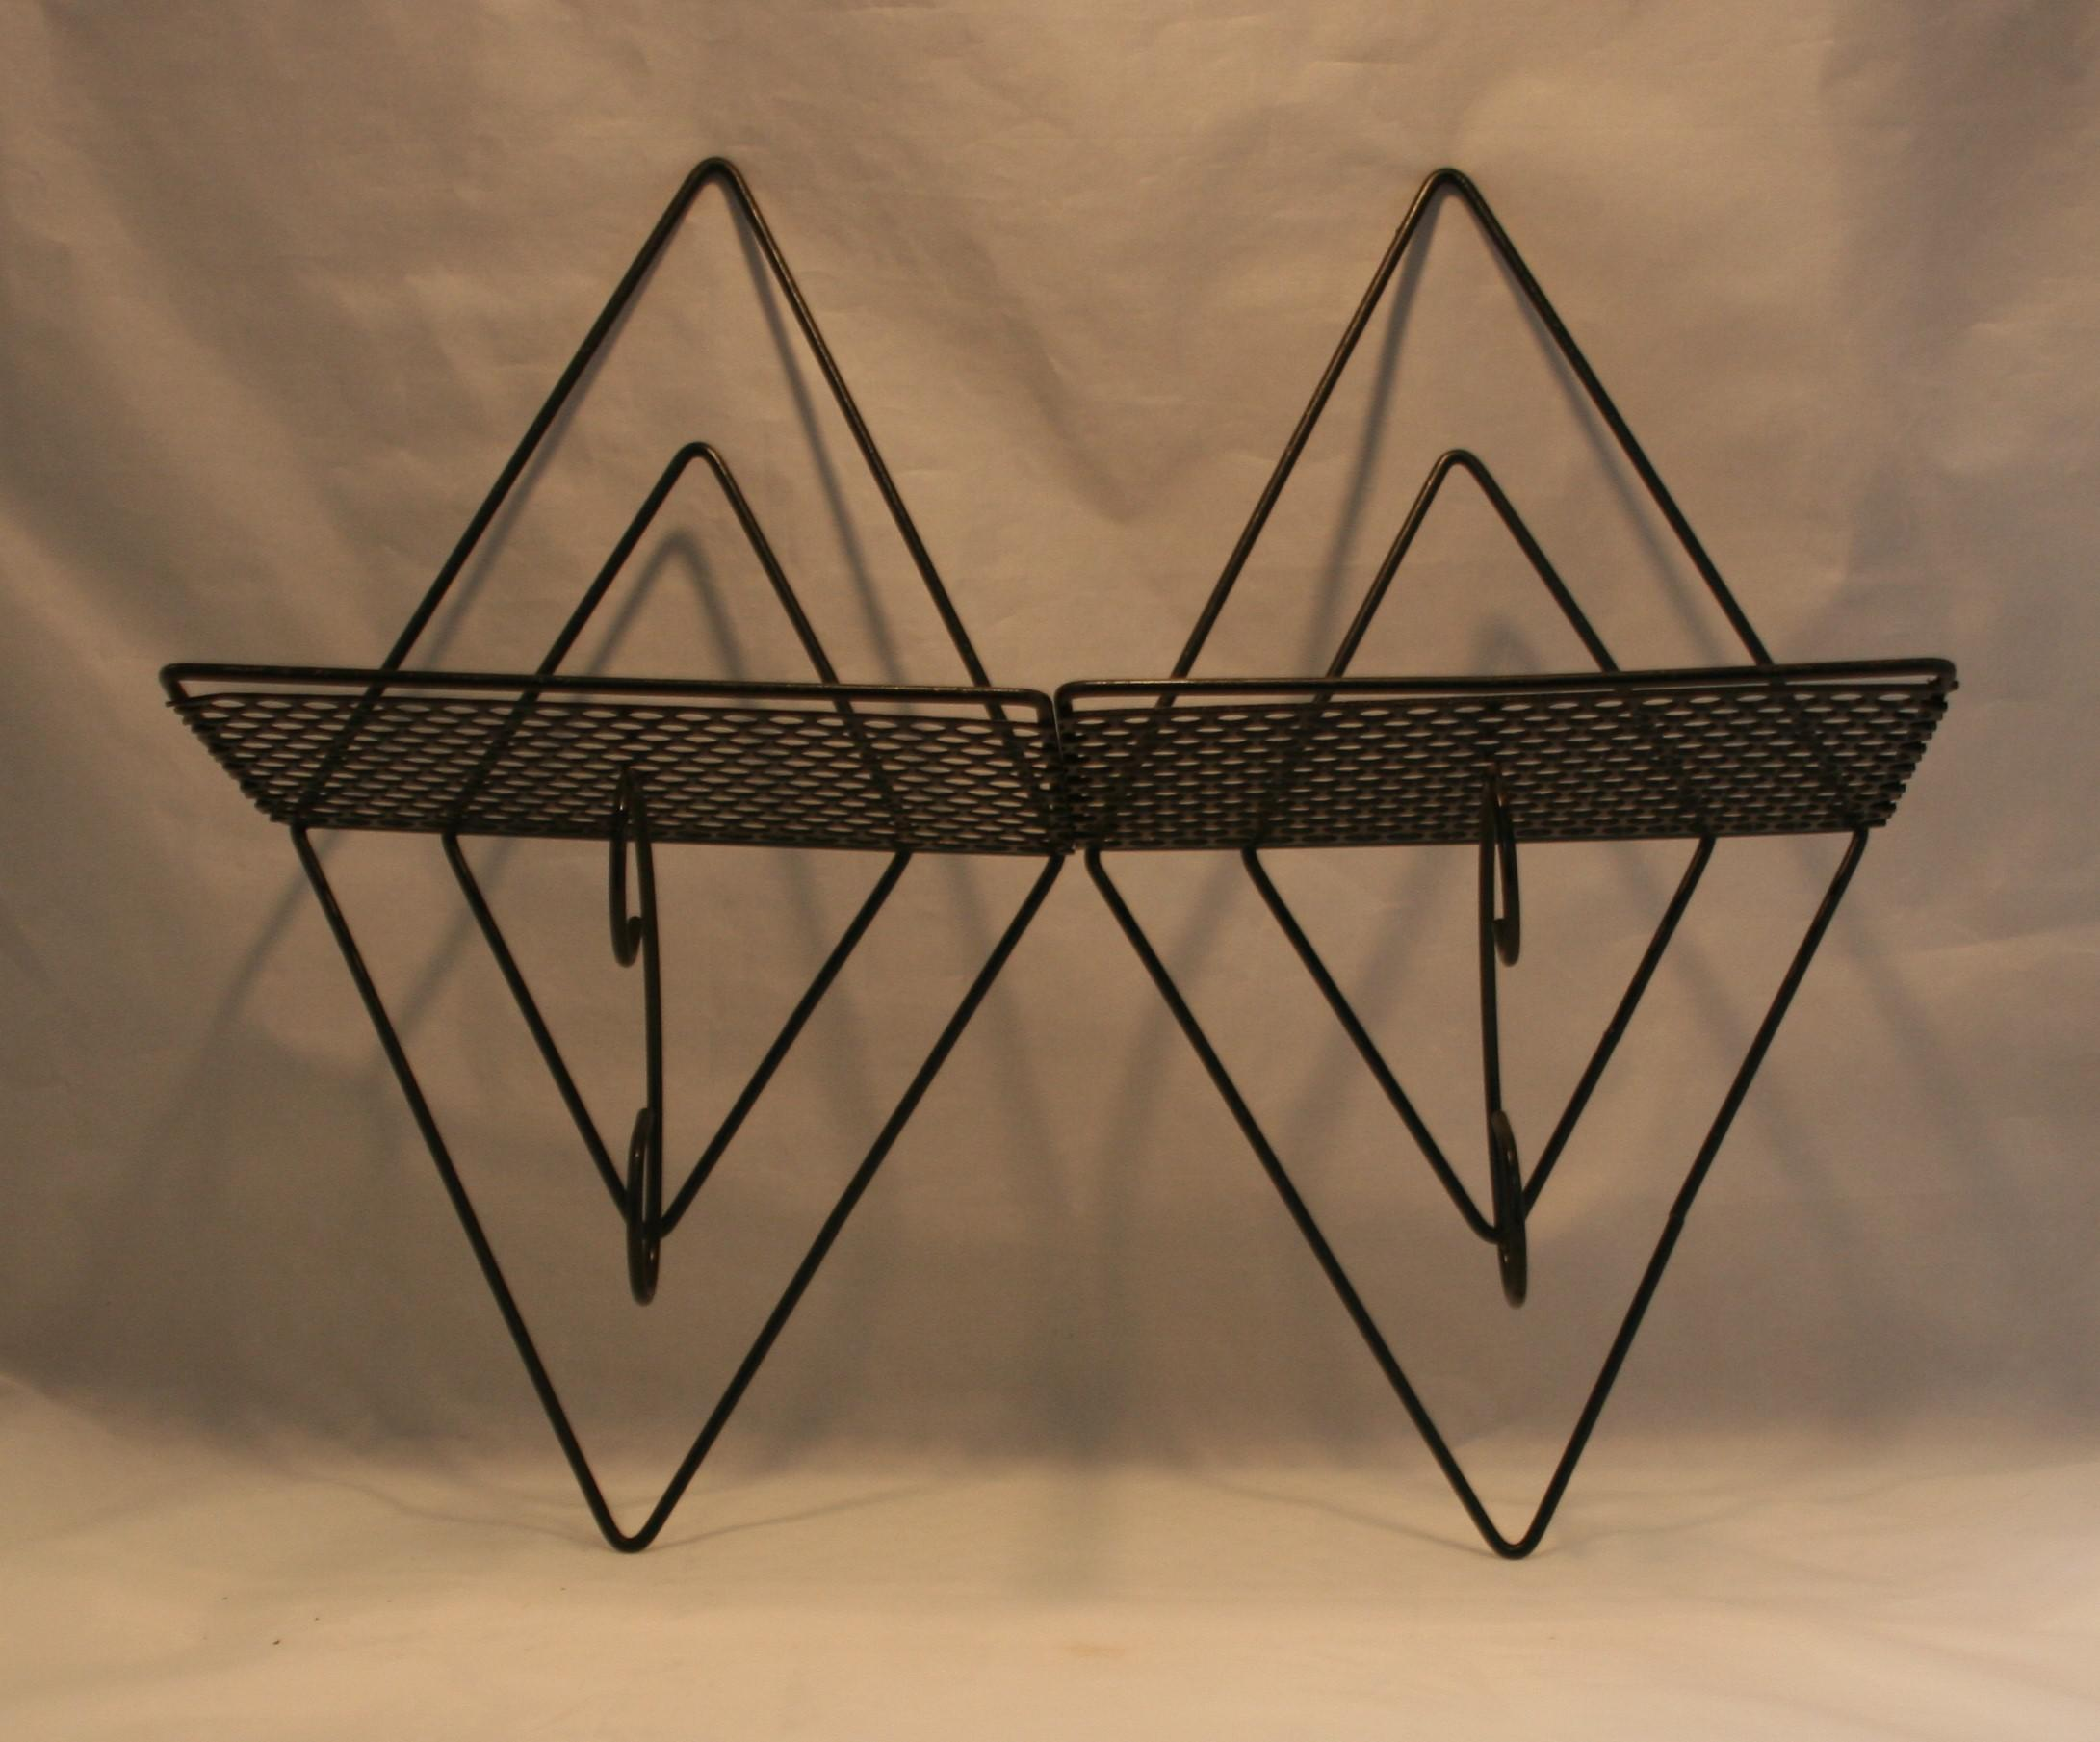 Black Wire Wall Shelving | Mid Century Modern Black Wire Punched Metal Diamond Shape Wall